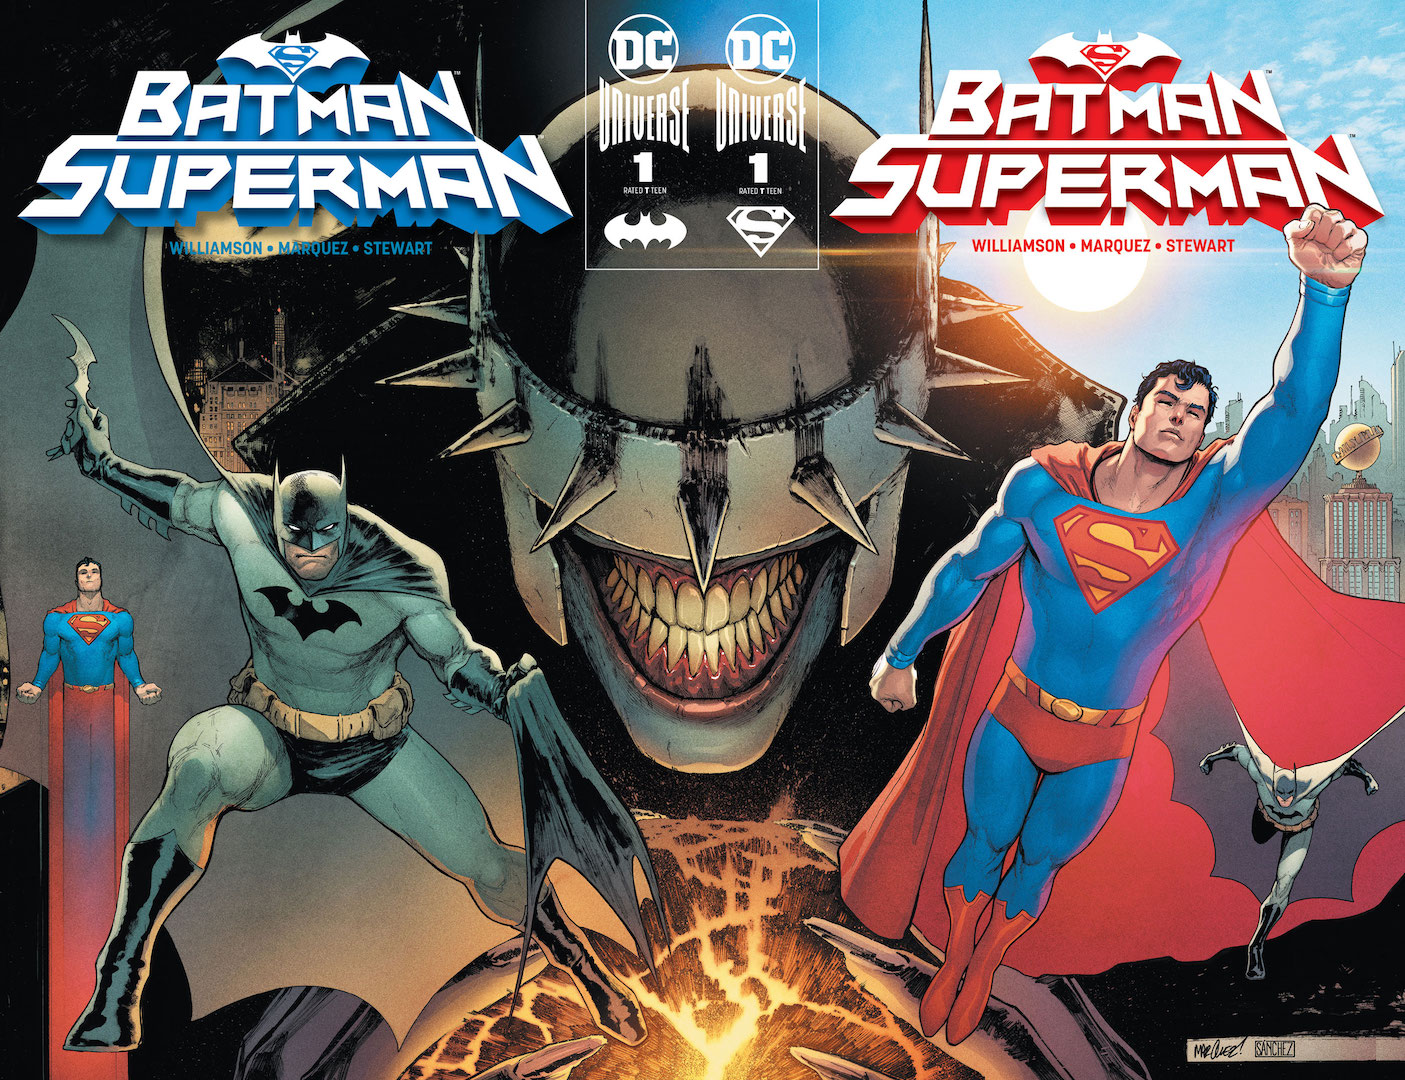 Sneak Preview: Batman and Superman unite to uncover the Secret Six!